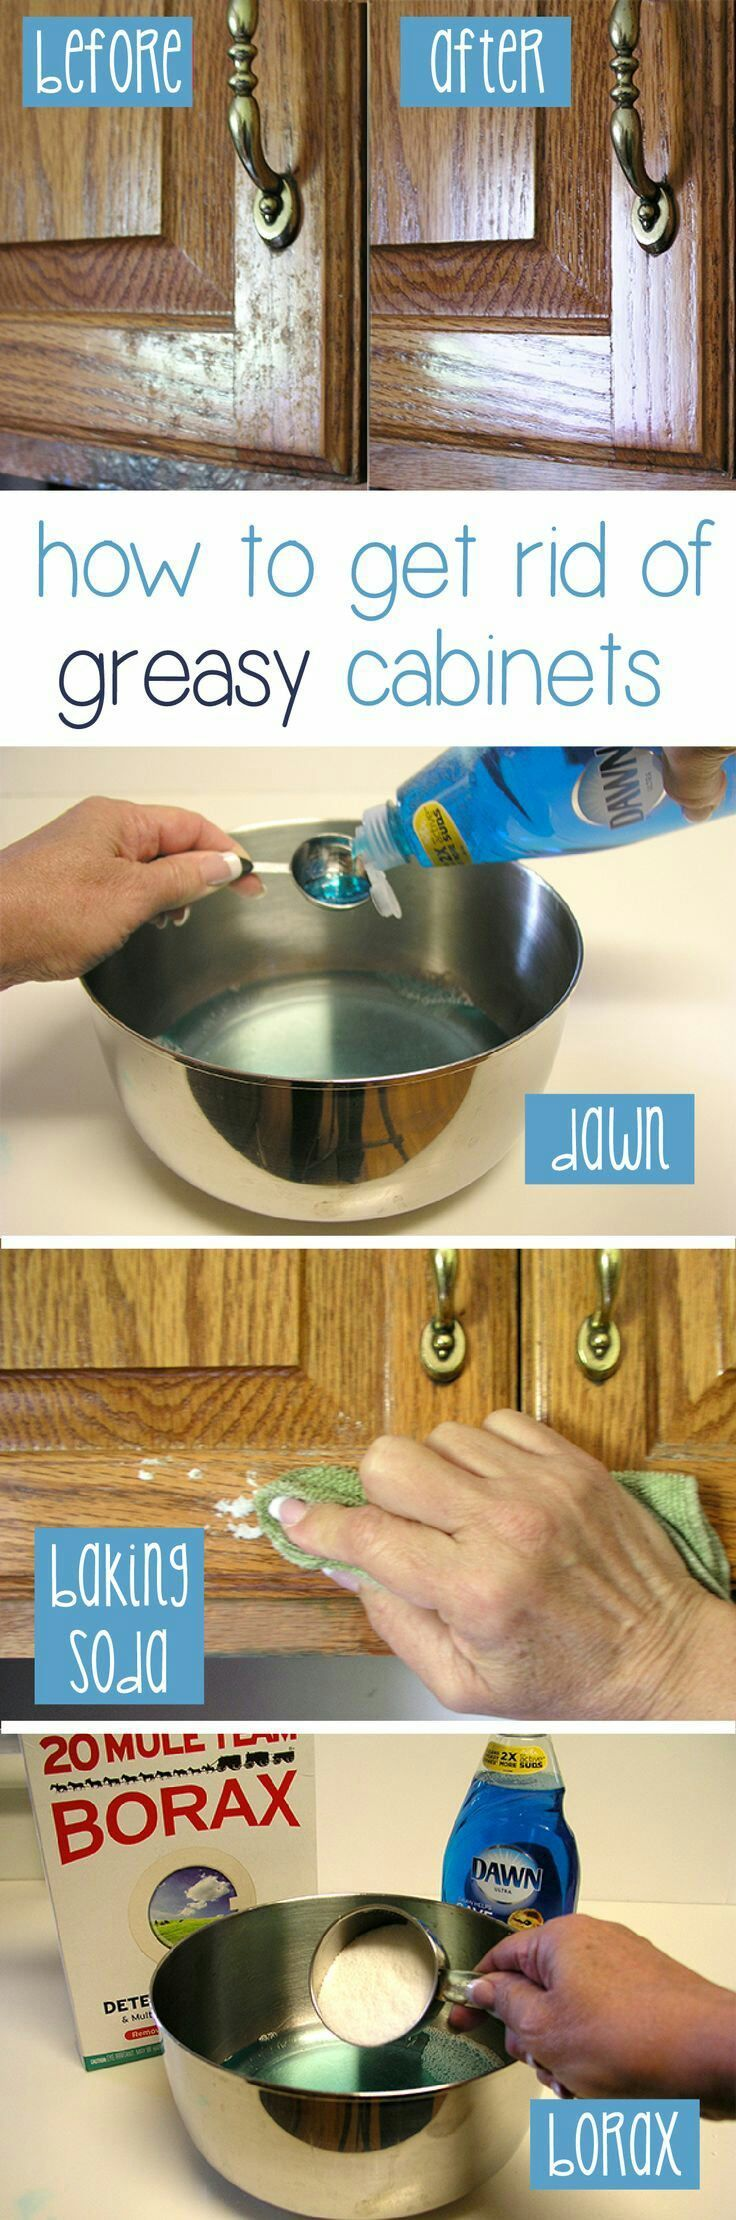 Cleaning Kitchen Cabinets Is Important Especially Grease Stains As They Usually Go Unnoticed And Grow Gradually In This Post You Ll Find Easy Ways To